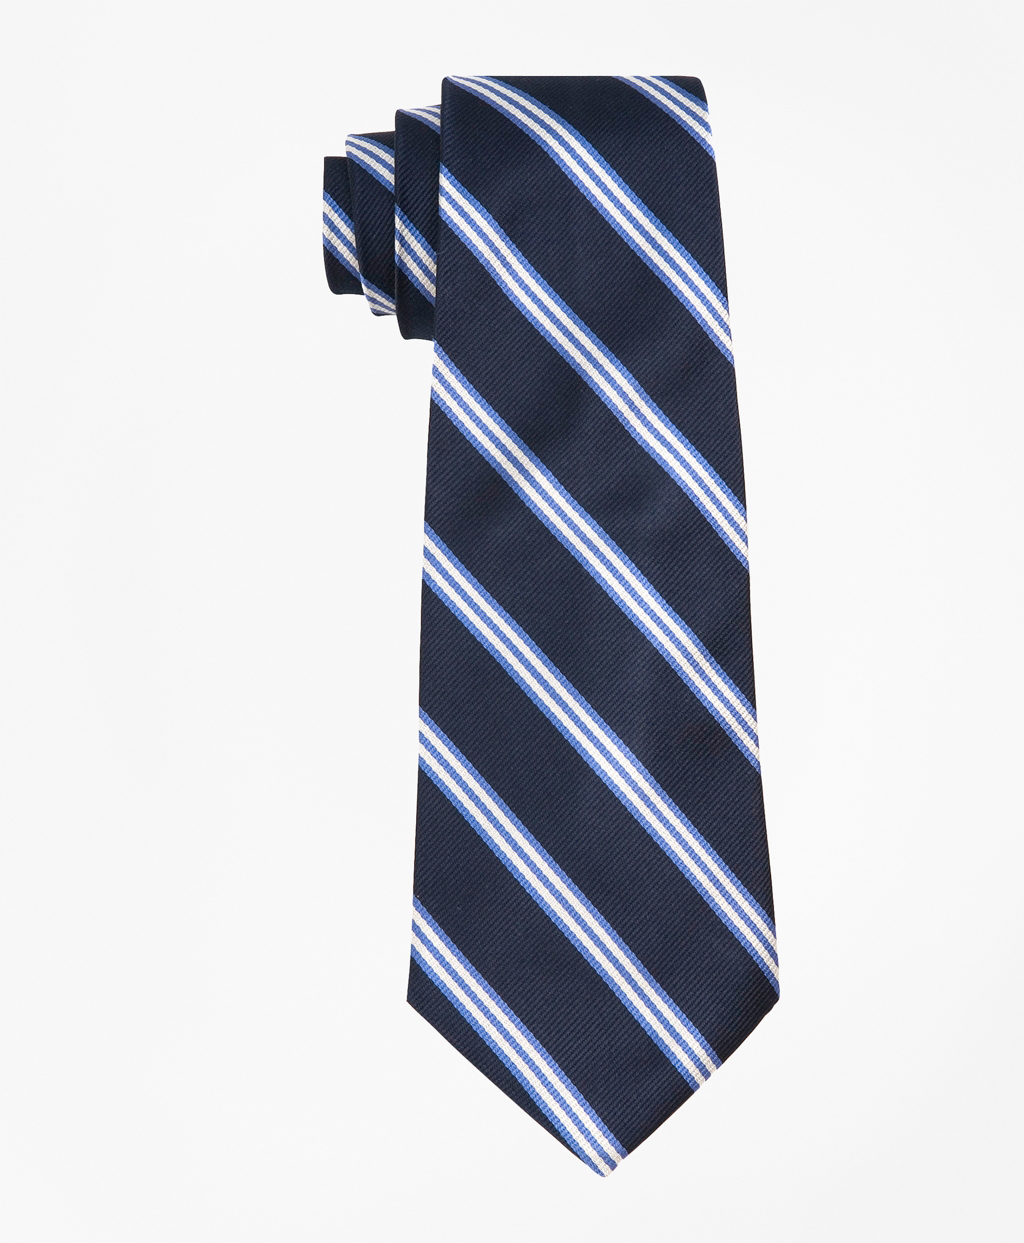 ring bearer blue white striped tie